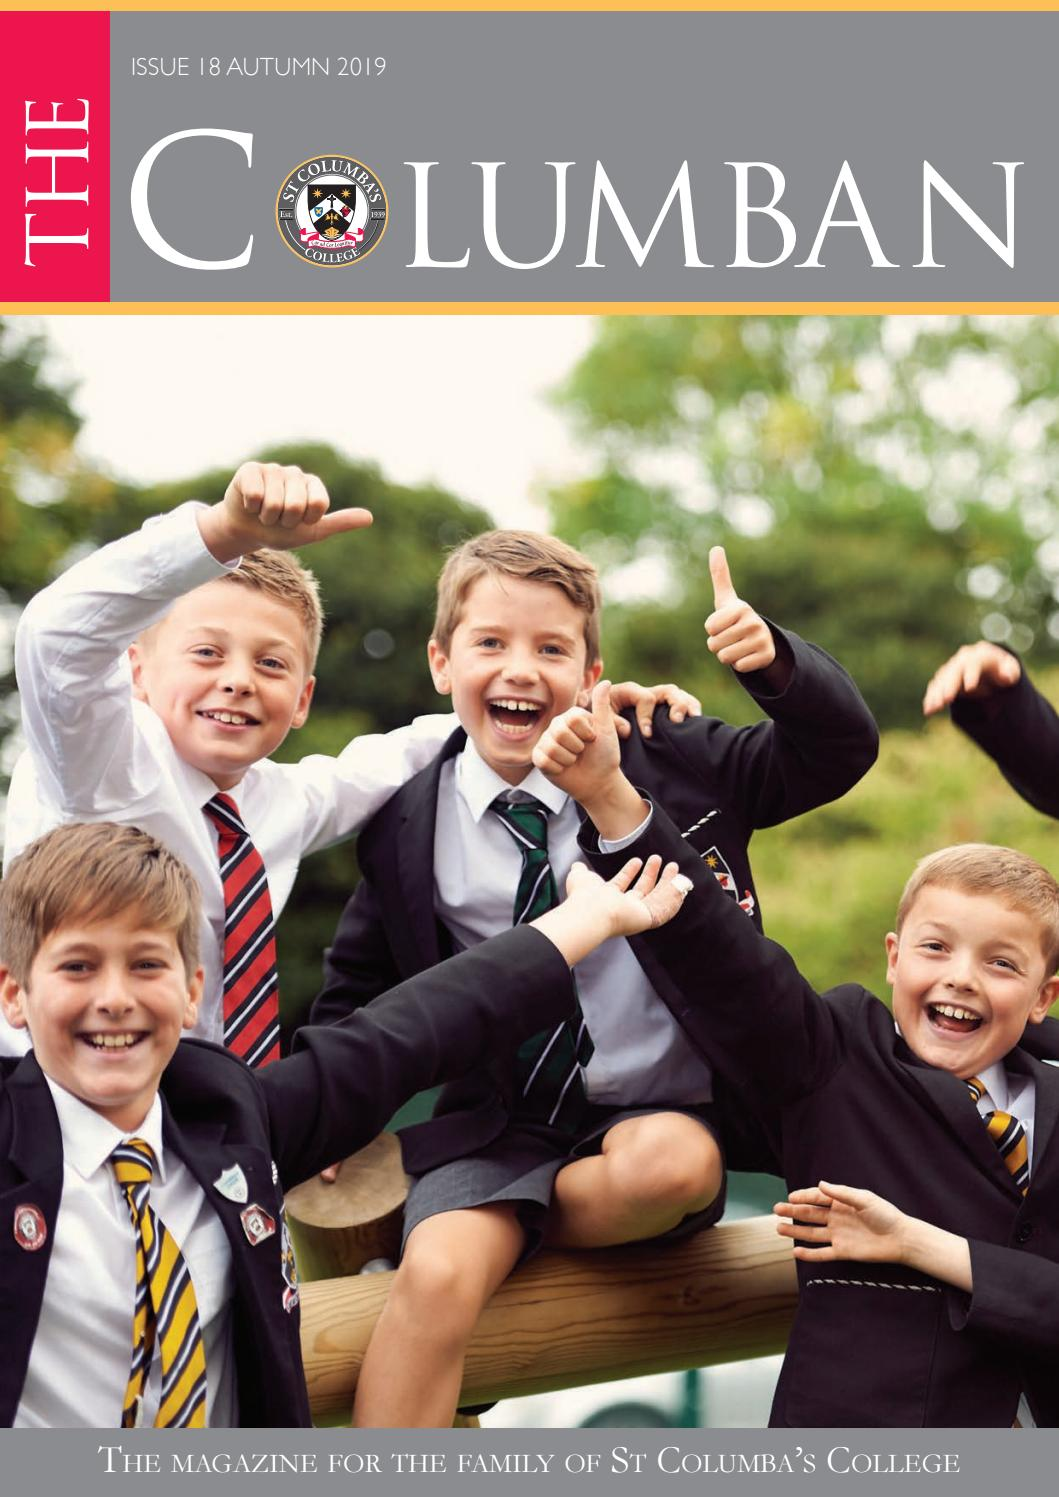 The Columban Magazine for the family of St Columba's College by ...